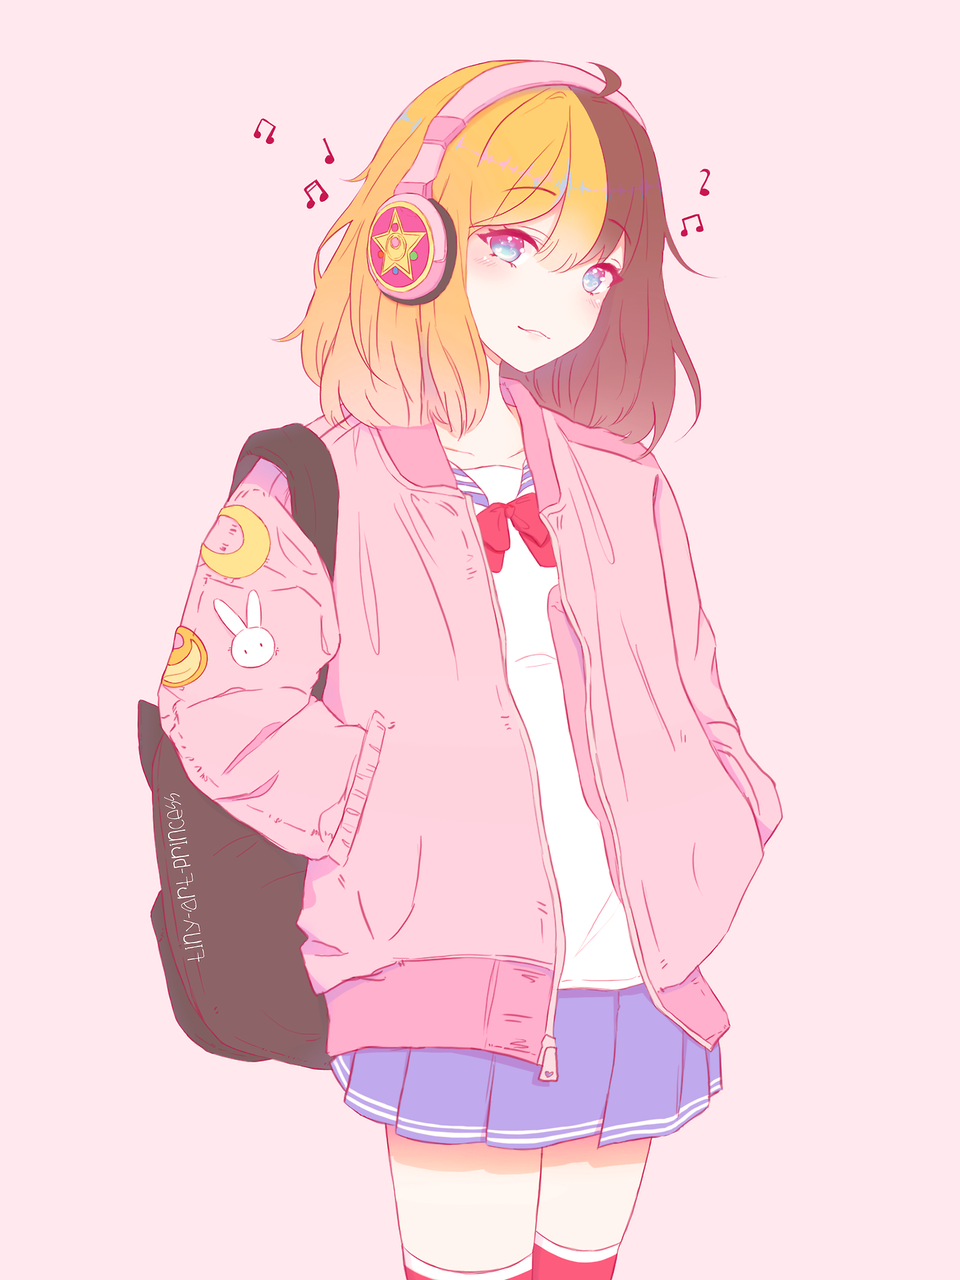 434 Images About Short Hair Anime Girl On We Heart It See More About Anime Anime Girl And Kawaii